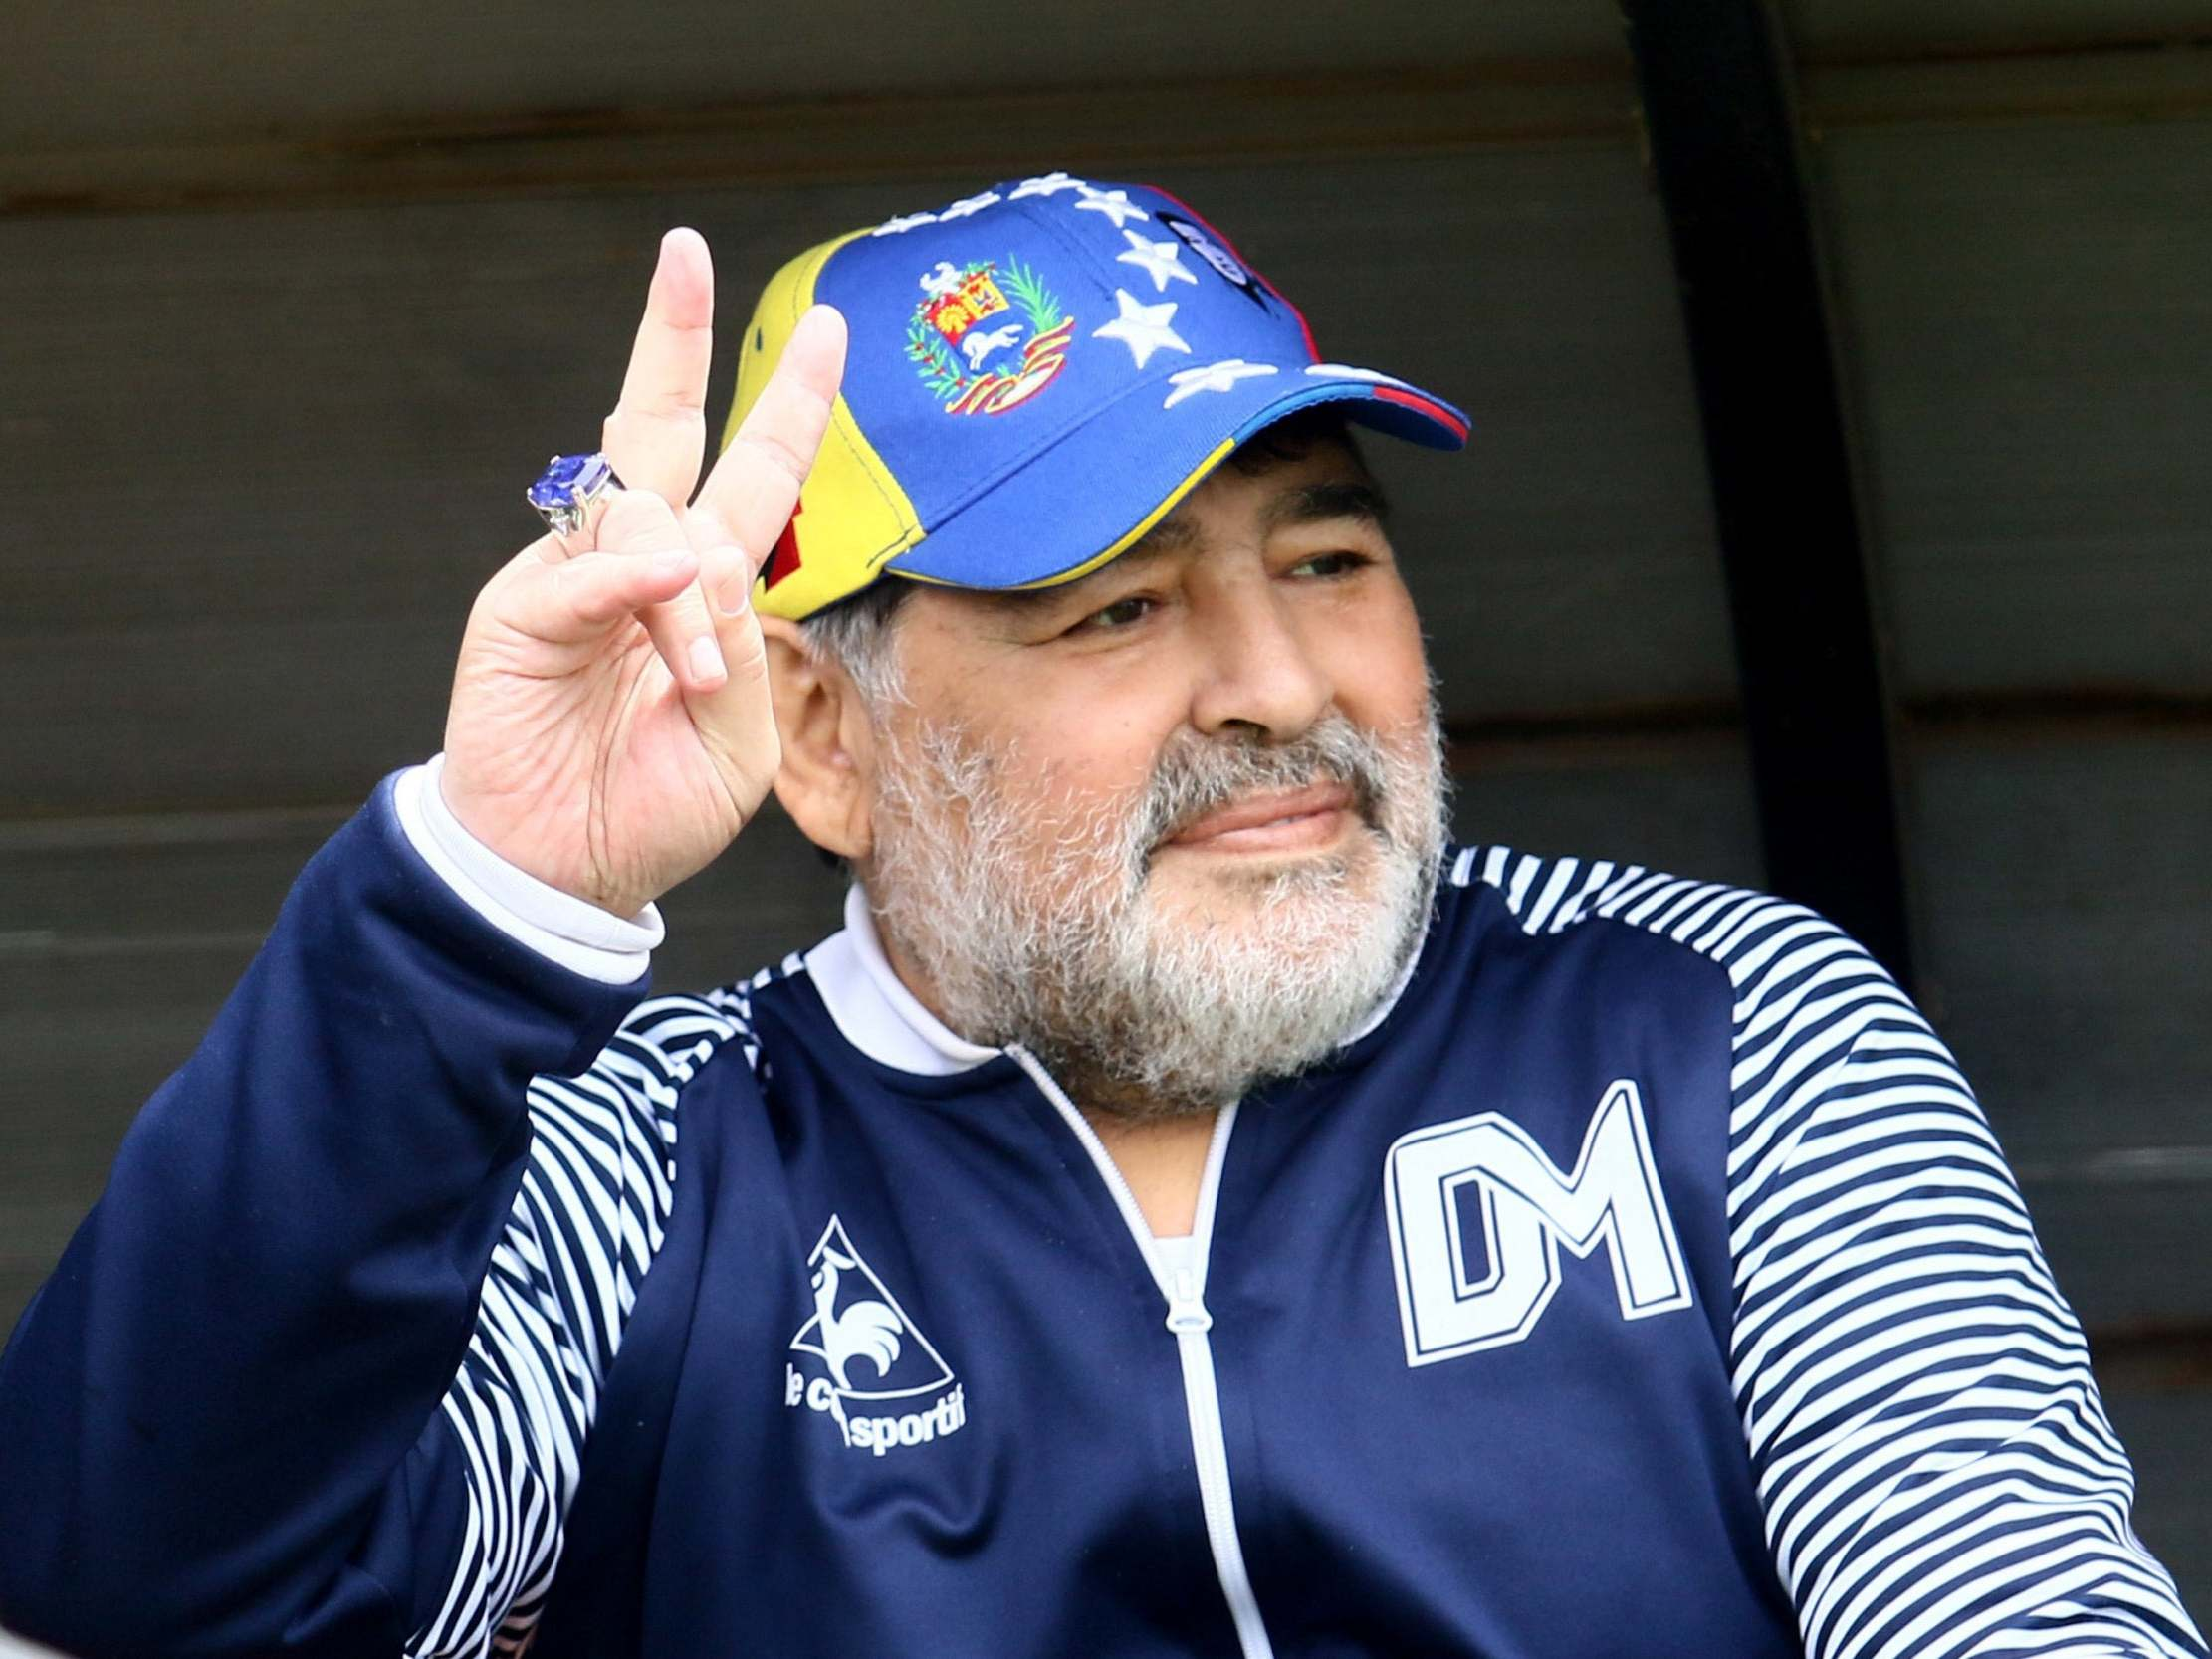 Diego Maradona Quits As Gimnasia Manager After Just Three Months The Independent The Independent